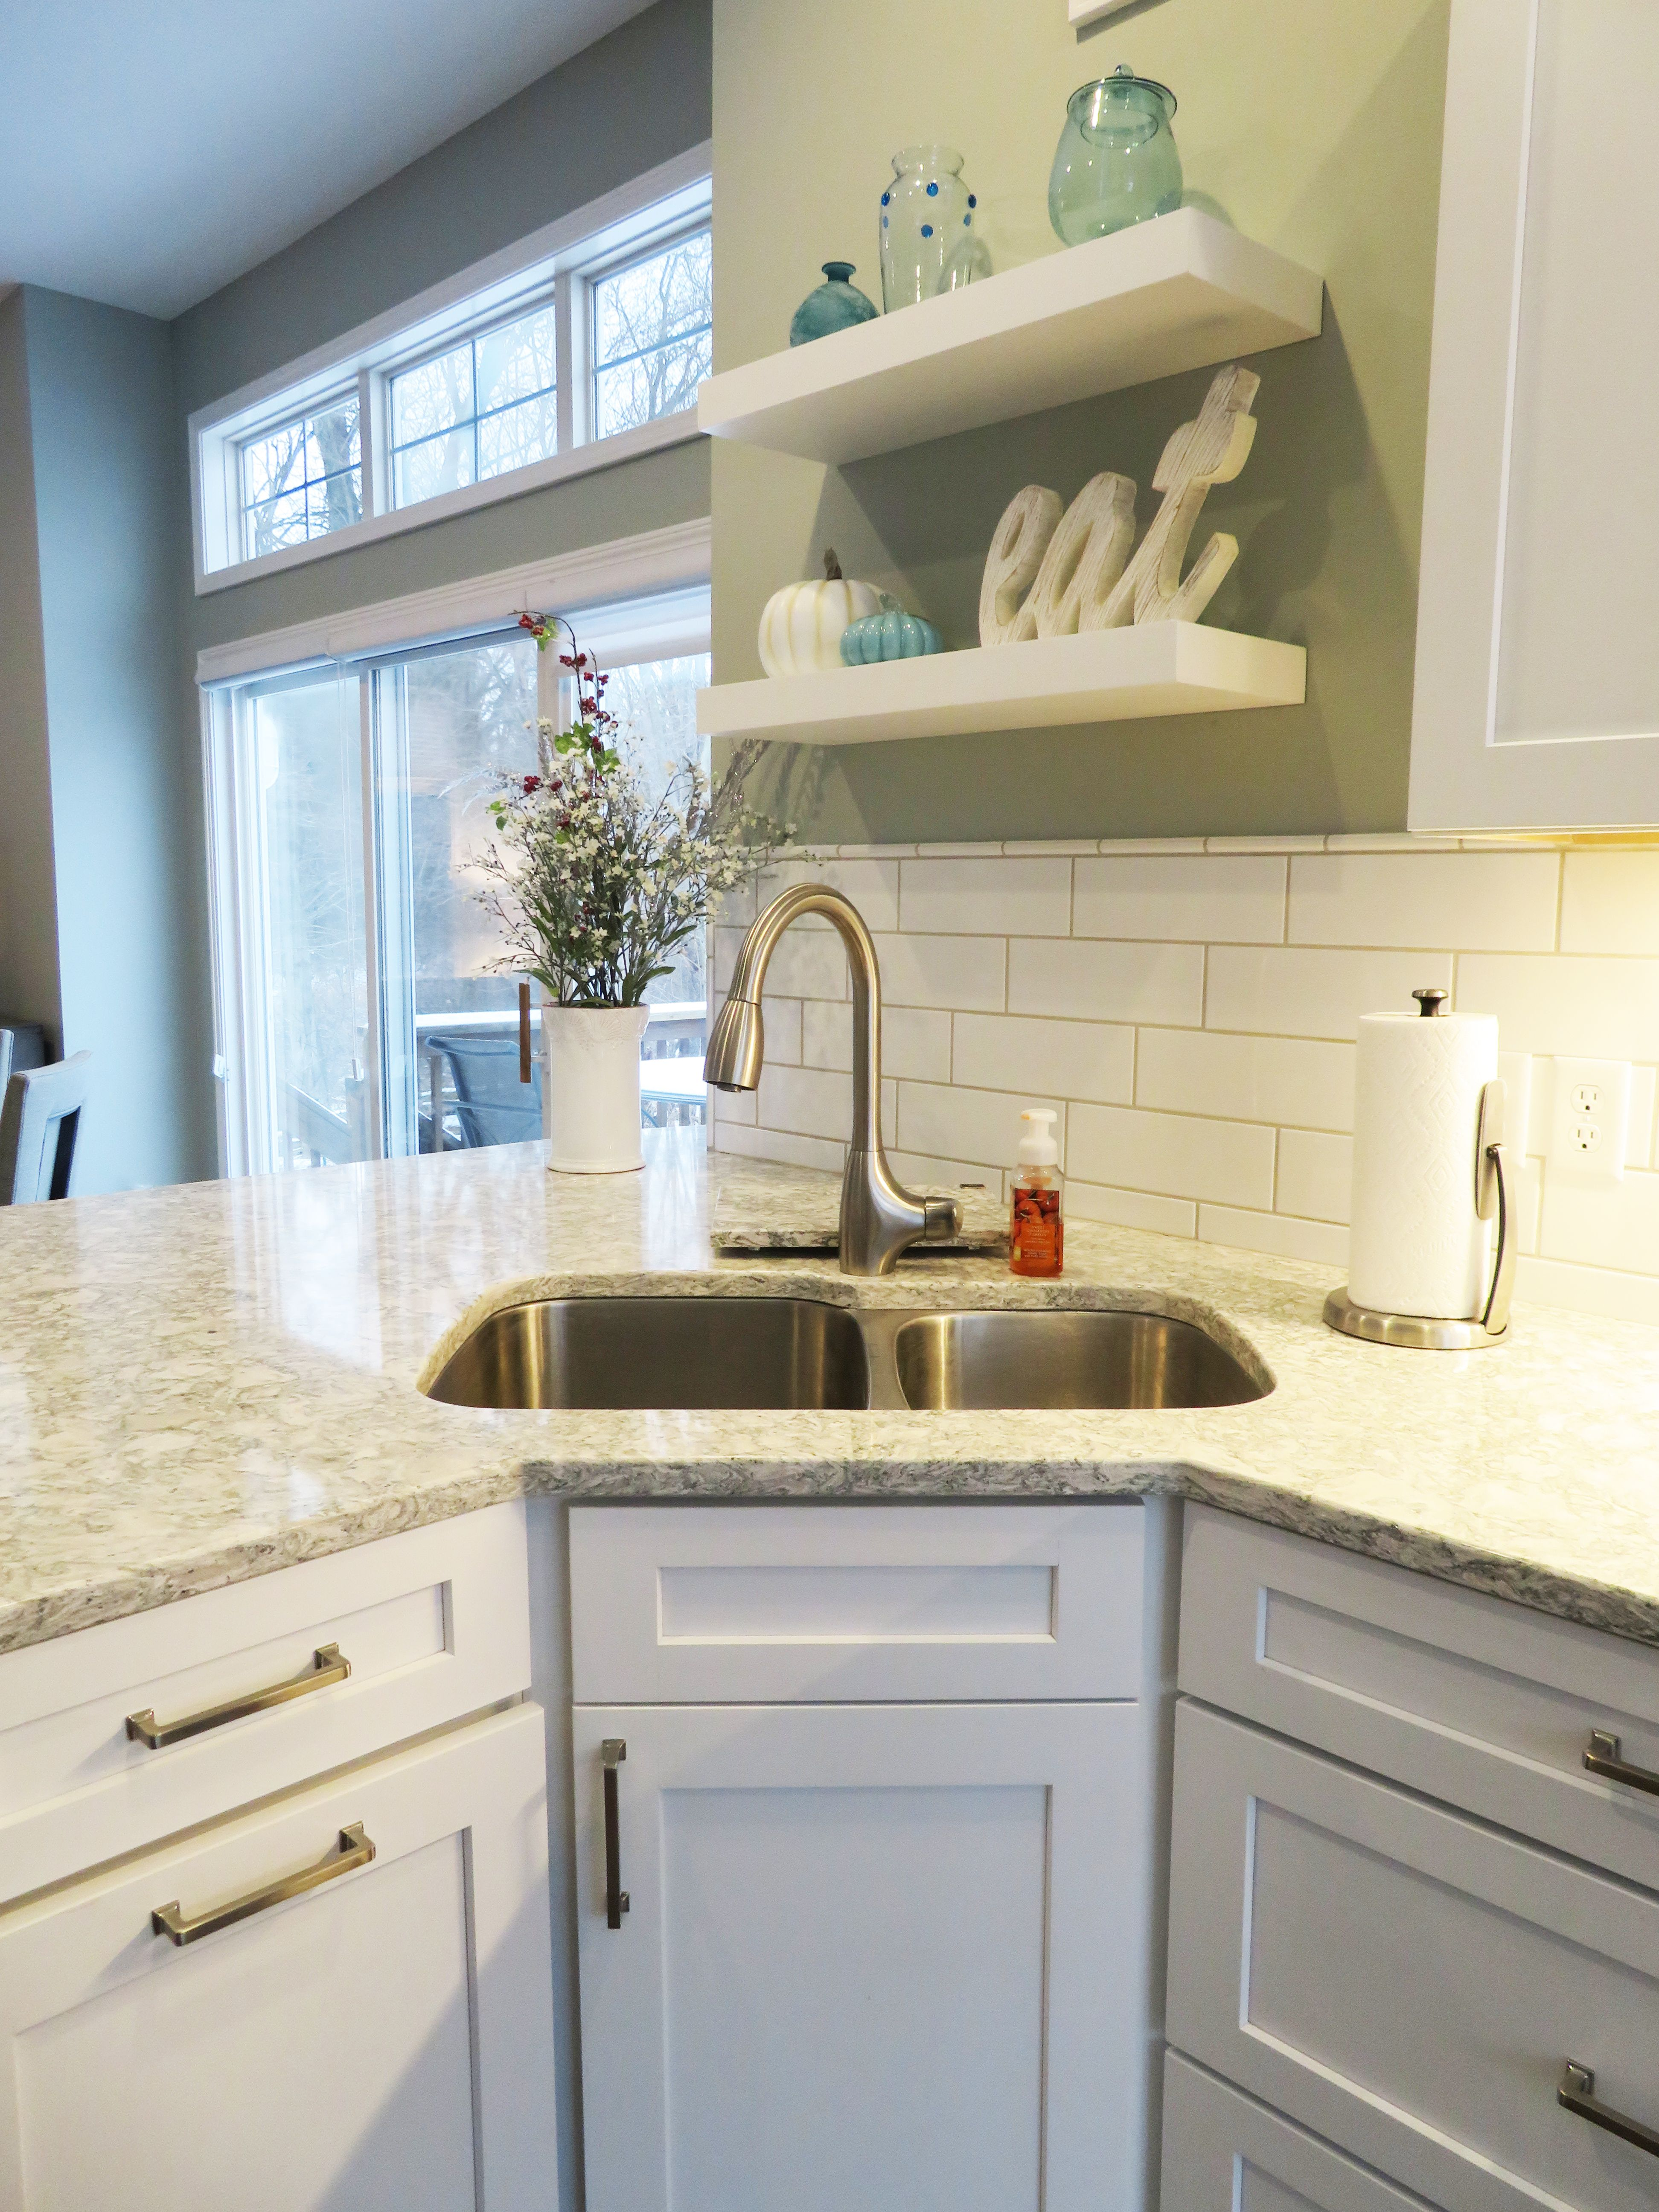 This Gorgeous Kitchen Is Made Up Of Wellborn Forest Cabinetry Door Style Chiswick Painted Confection White Cambria C Kitchen Kitchen Remodel Kitchen Design